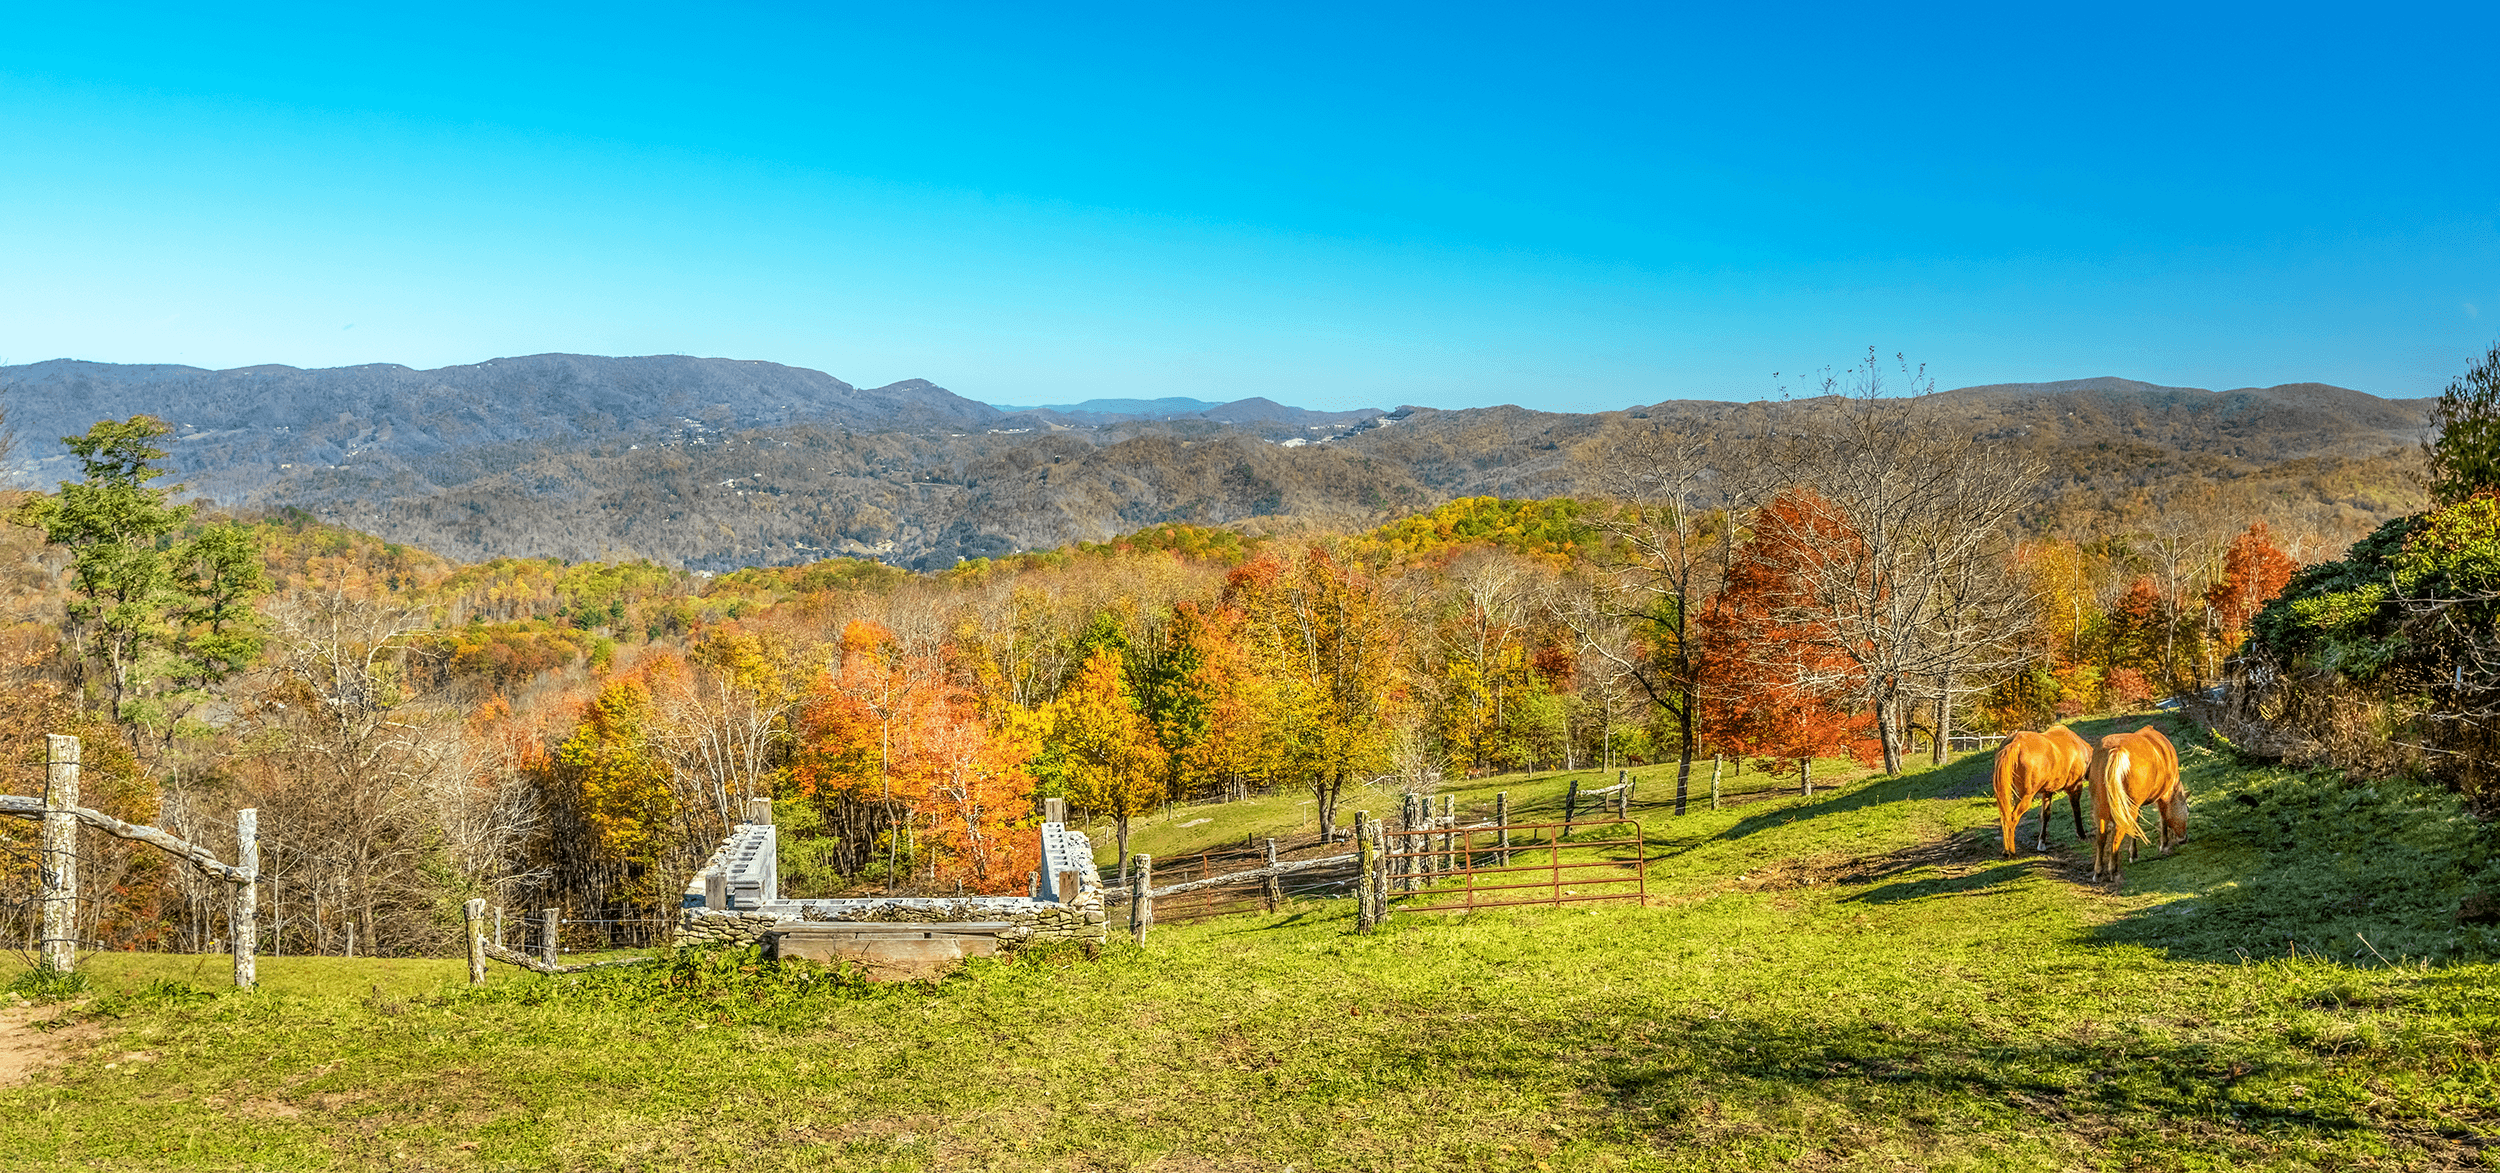 When the weather is sunny, you can also enjoy picturesque long range hilltop views from an altitude of 3,757 feet (1,145 meters) on the top of  Valle Mountain .